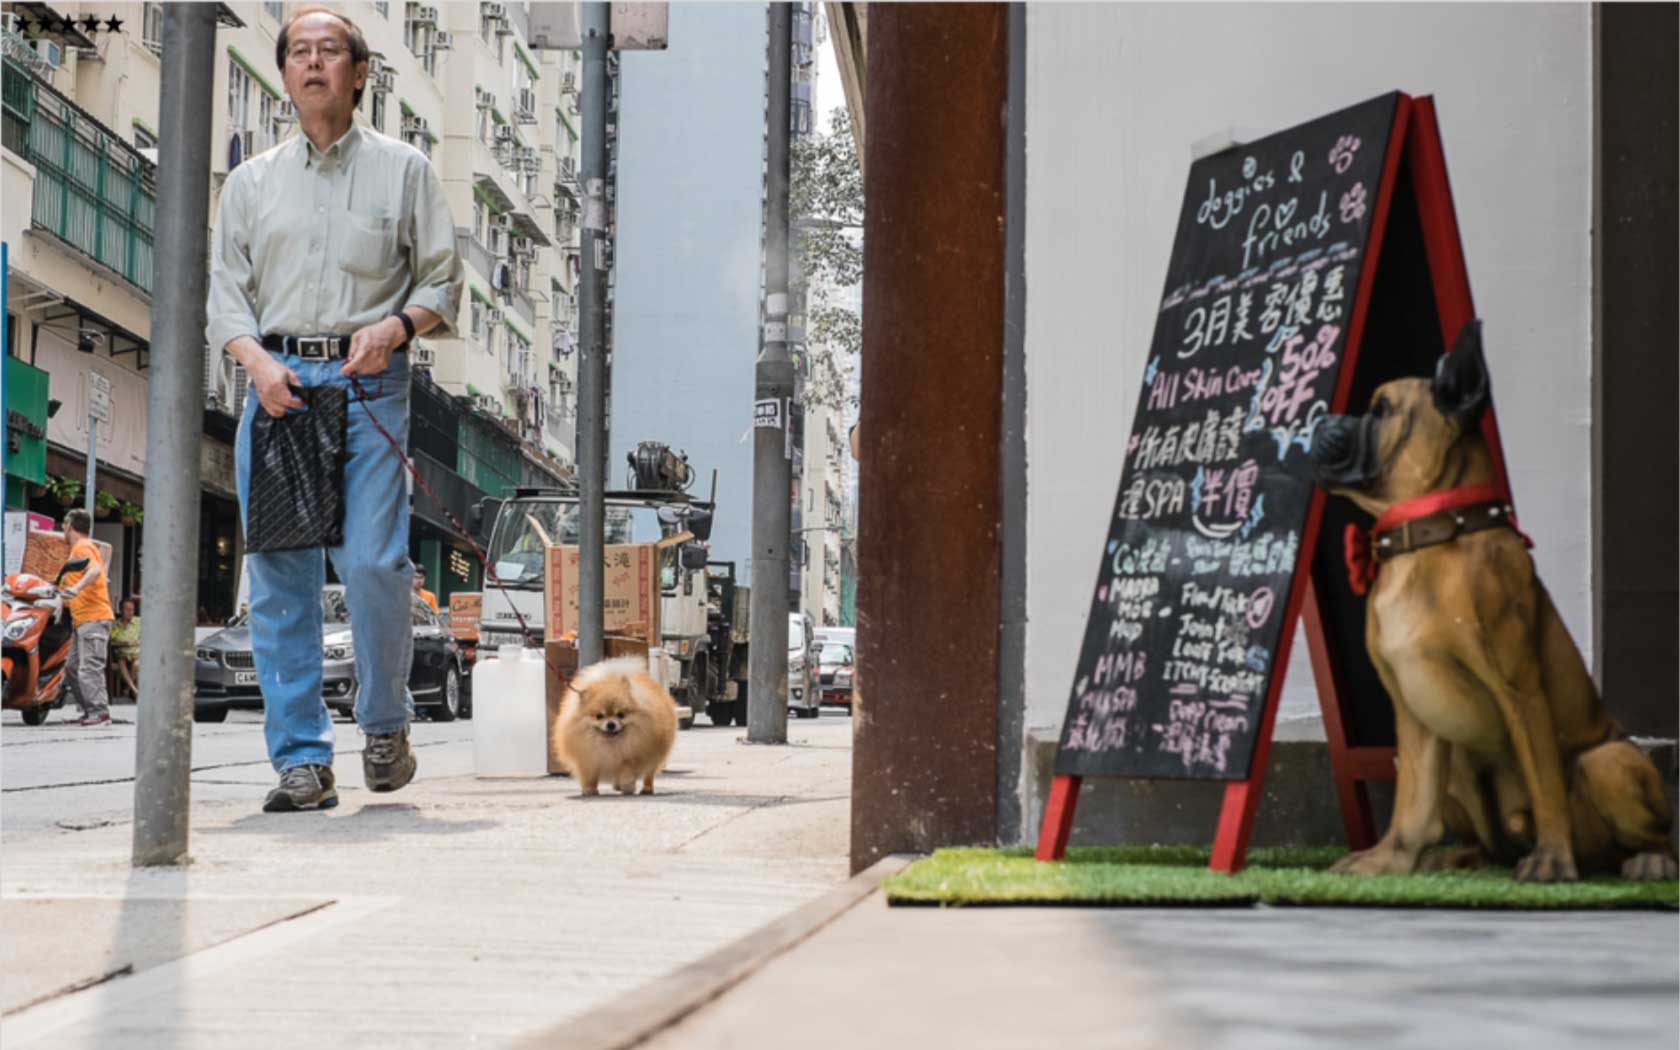 Loho Petra, University of Hong Kong: Male dog owner walks past a dog spa on High Street, Sai Ying Pun, 2016, with his Pomeranian.